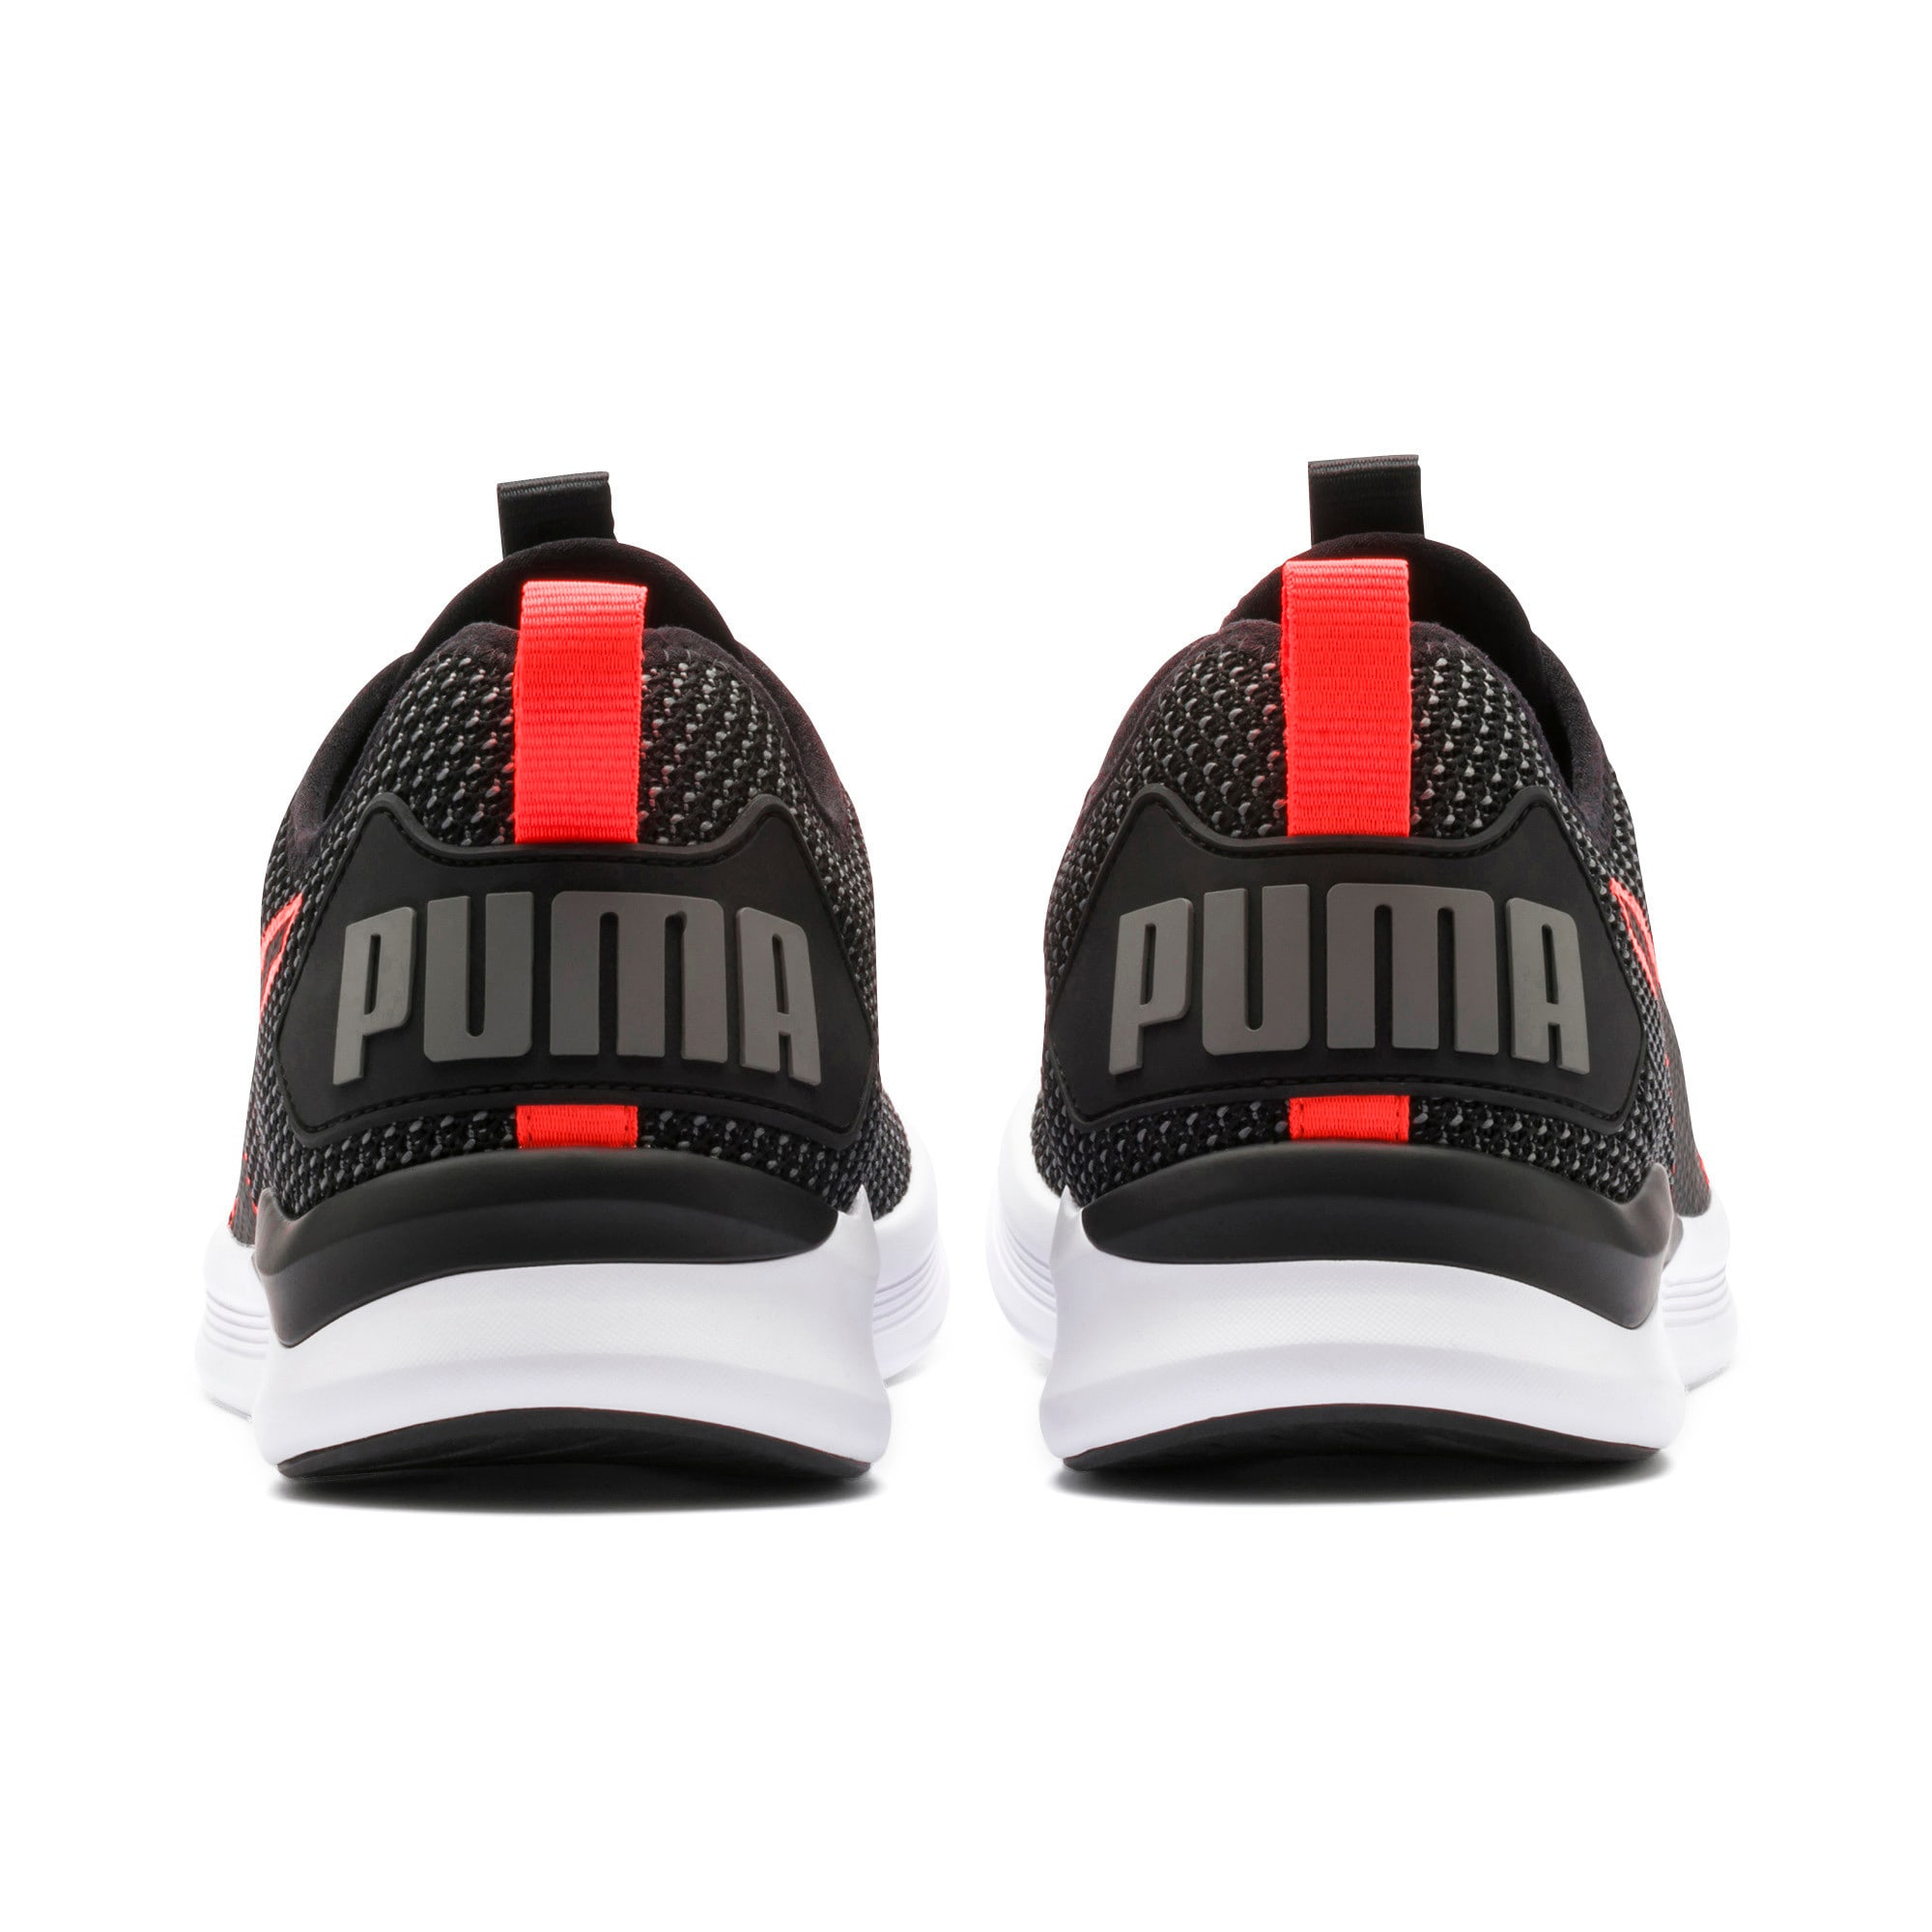 Thumbnail 5 of IGNITE Flash FS Men's Running Shoes, Puma Black-Nrgy Red, medium-IND